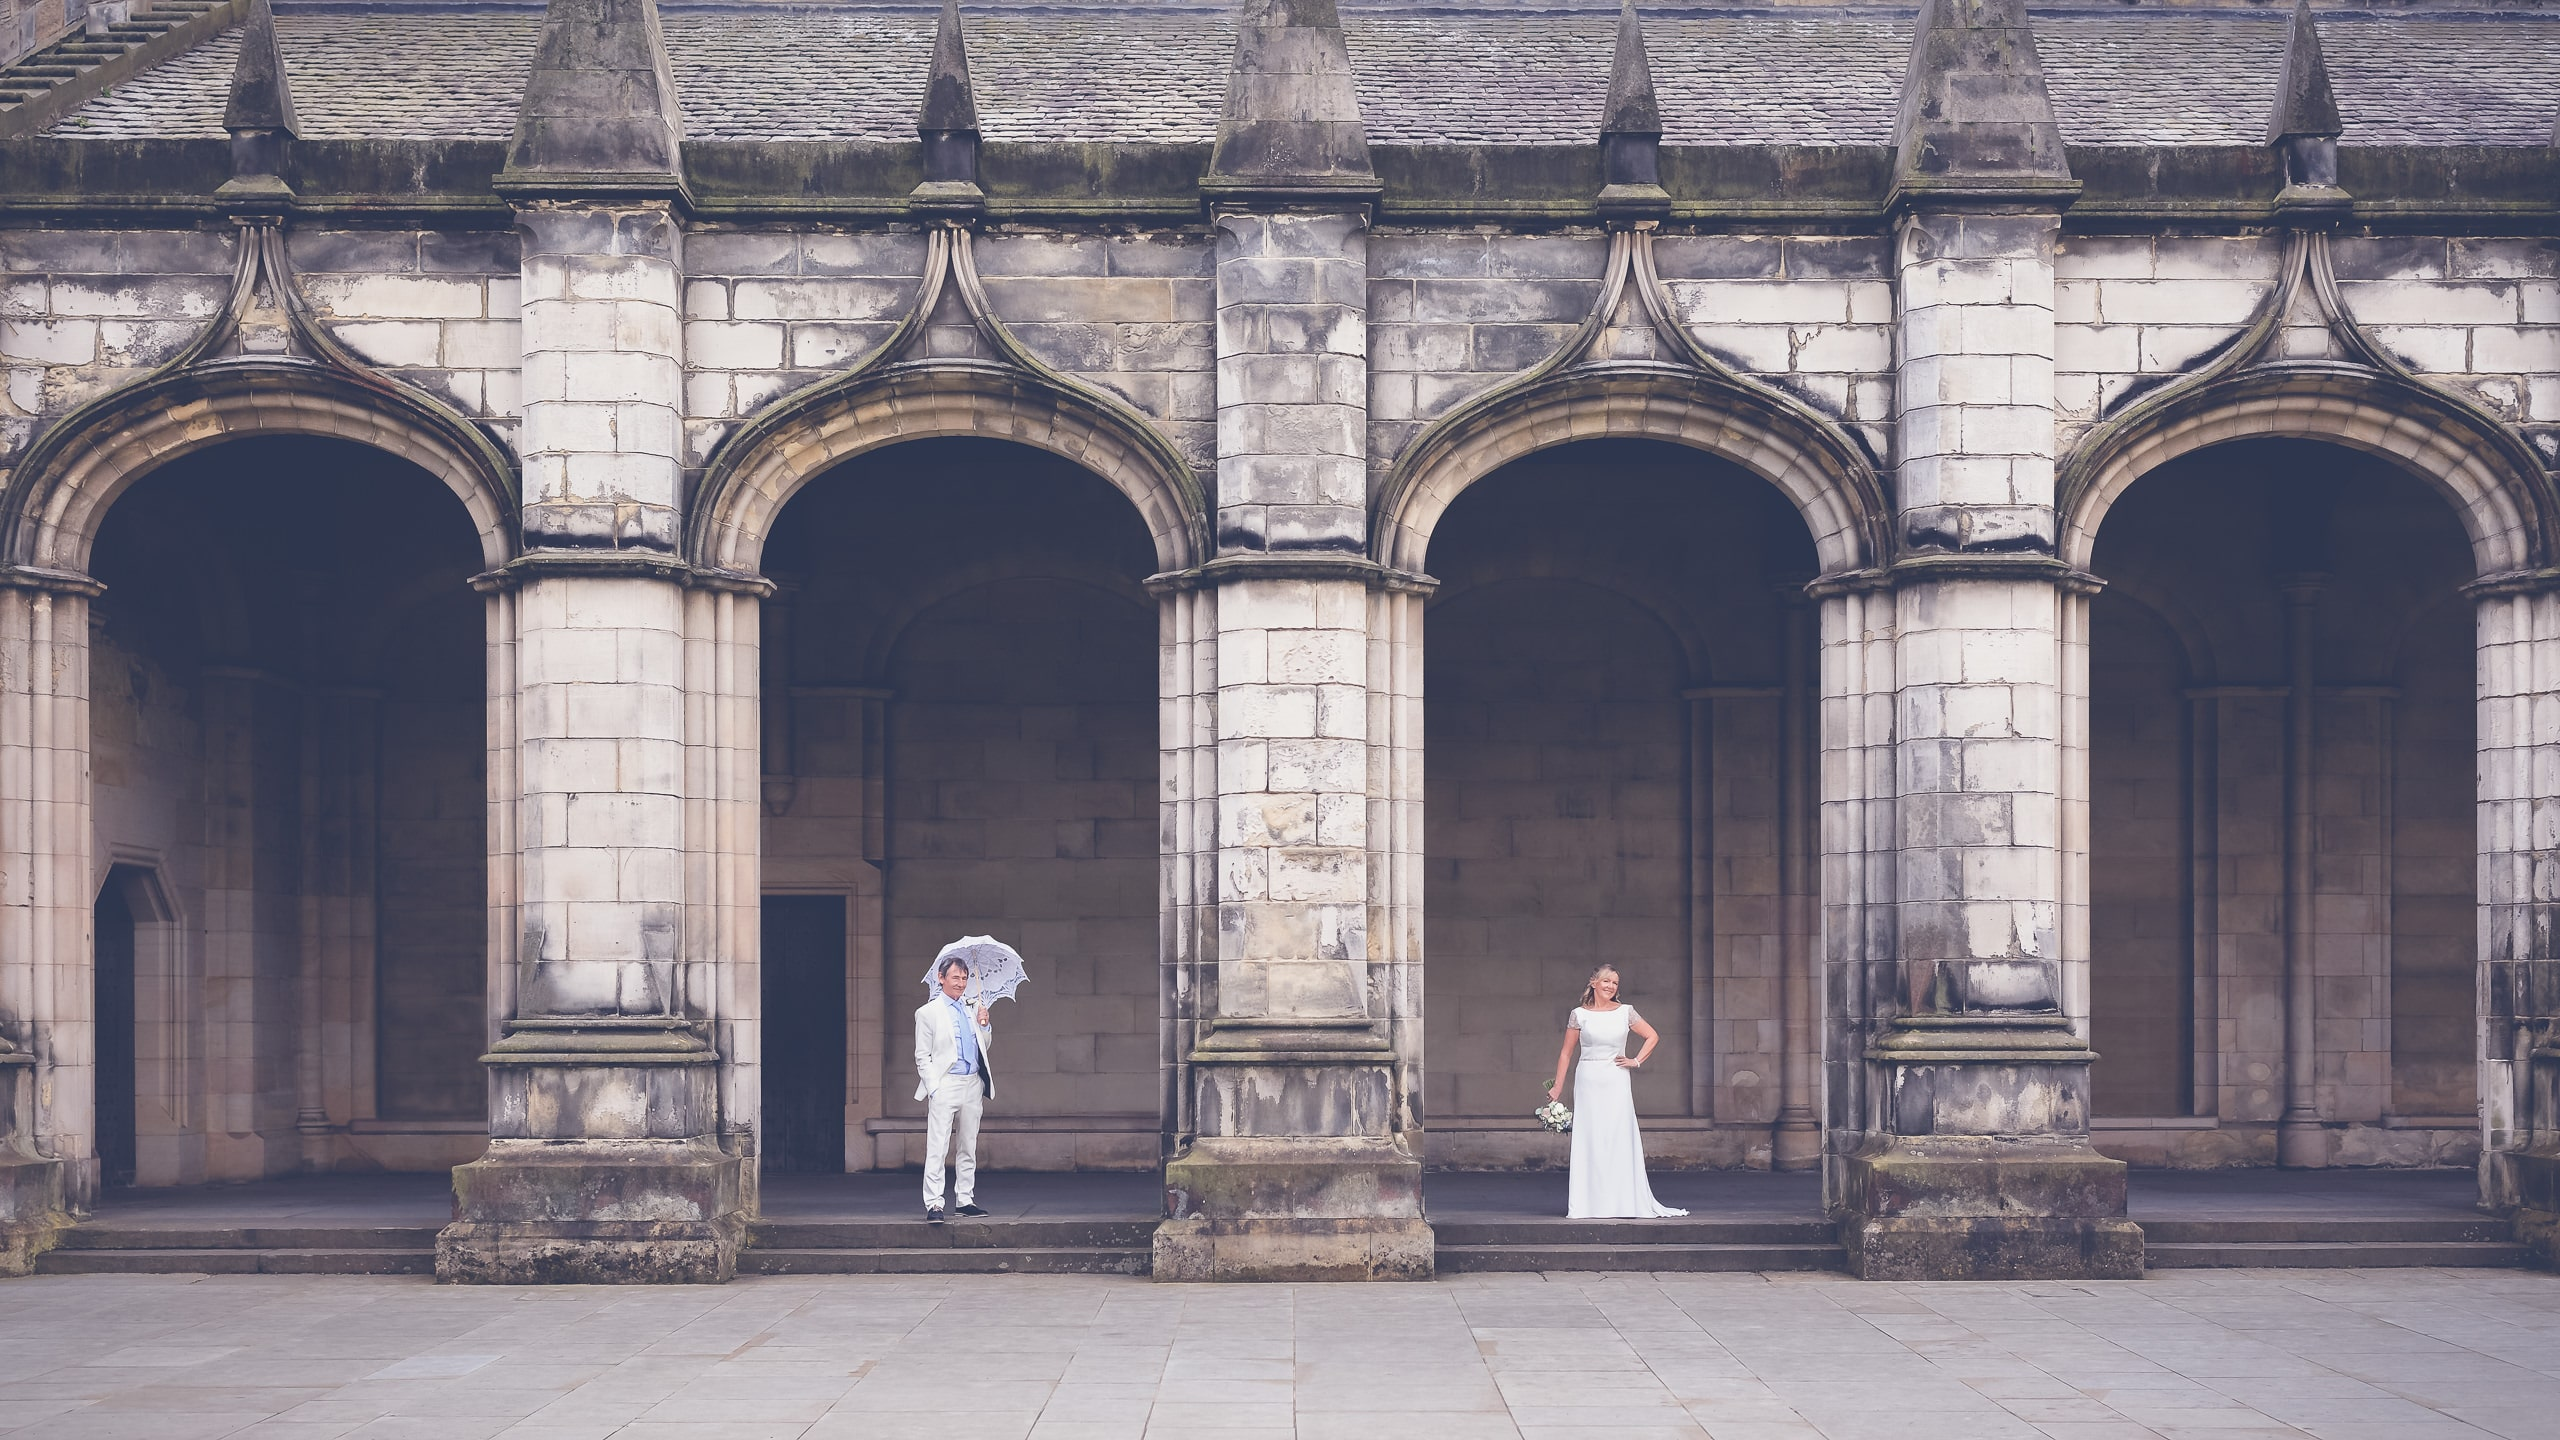 The bride and groom in St Andrews arches